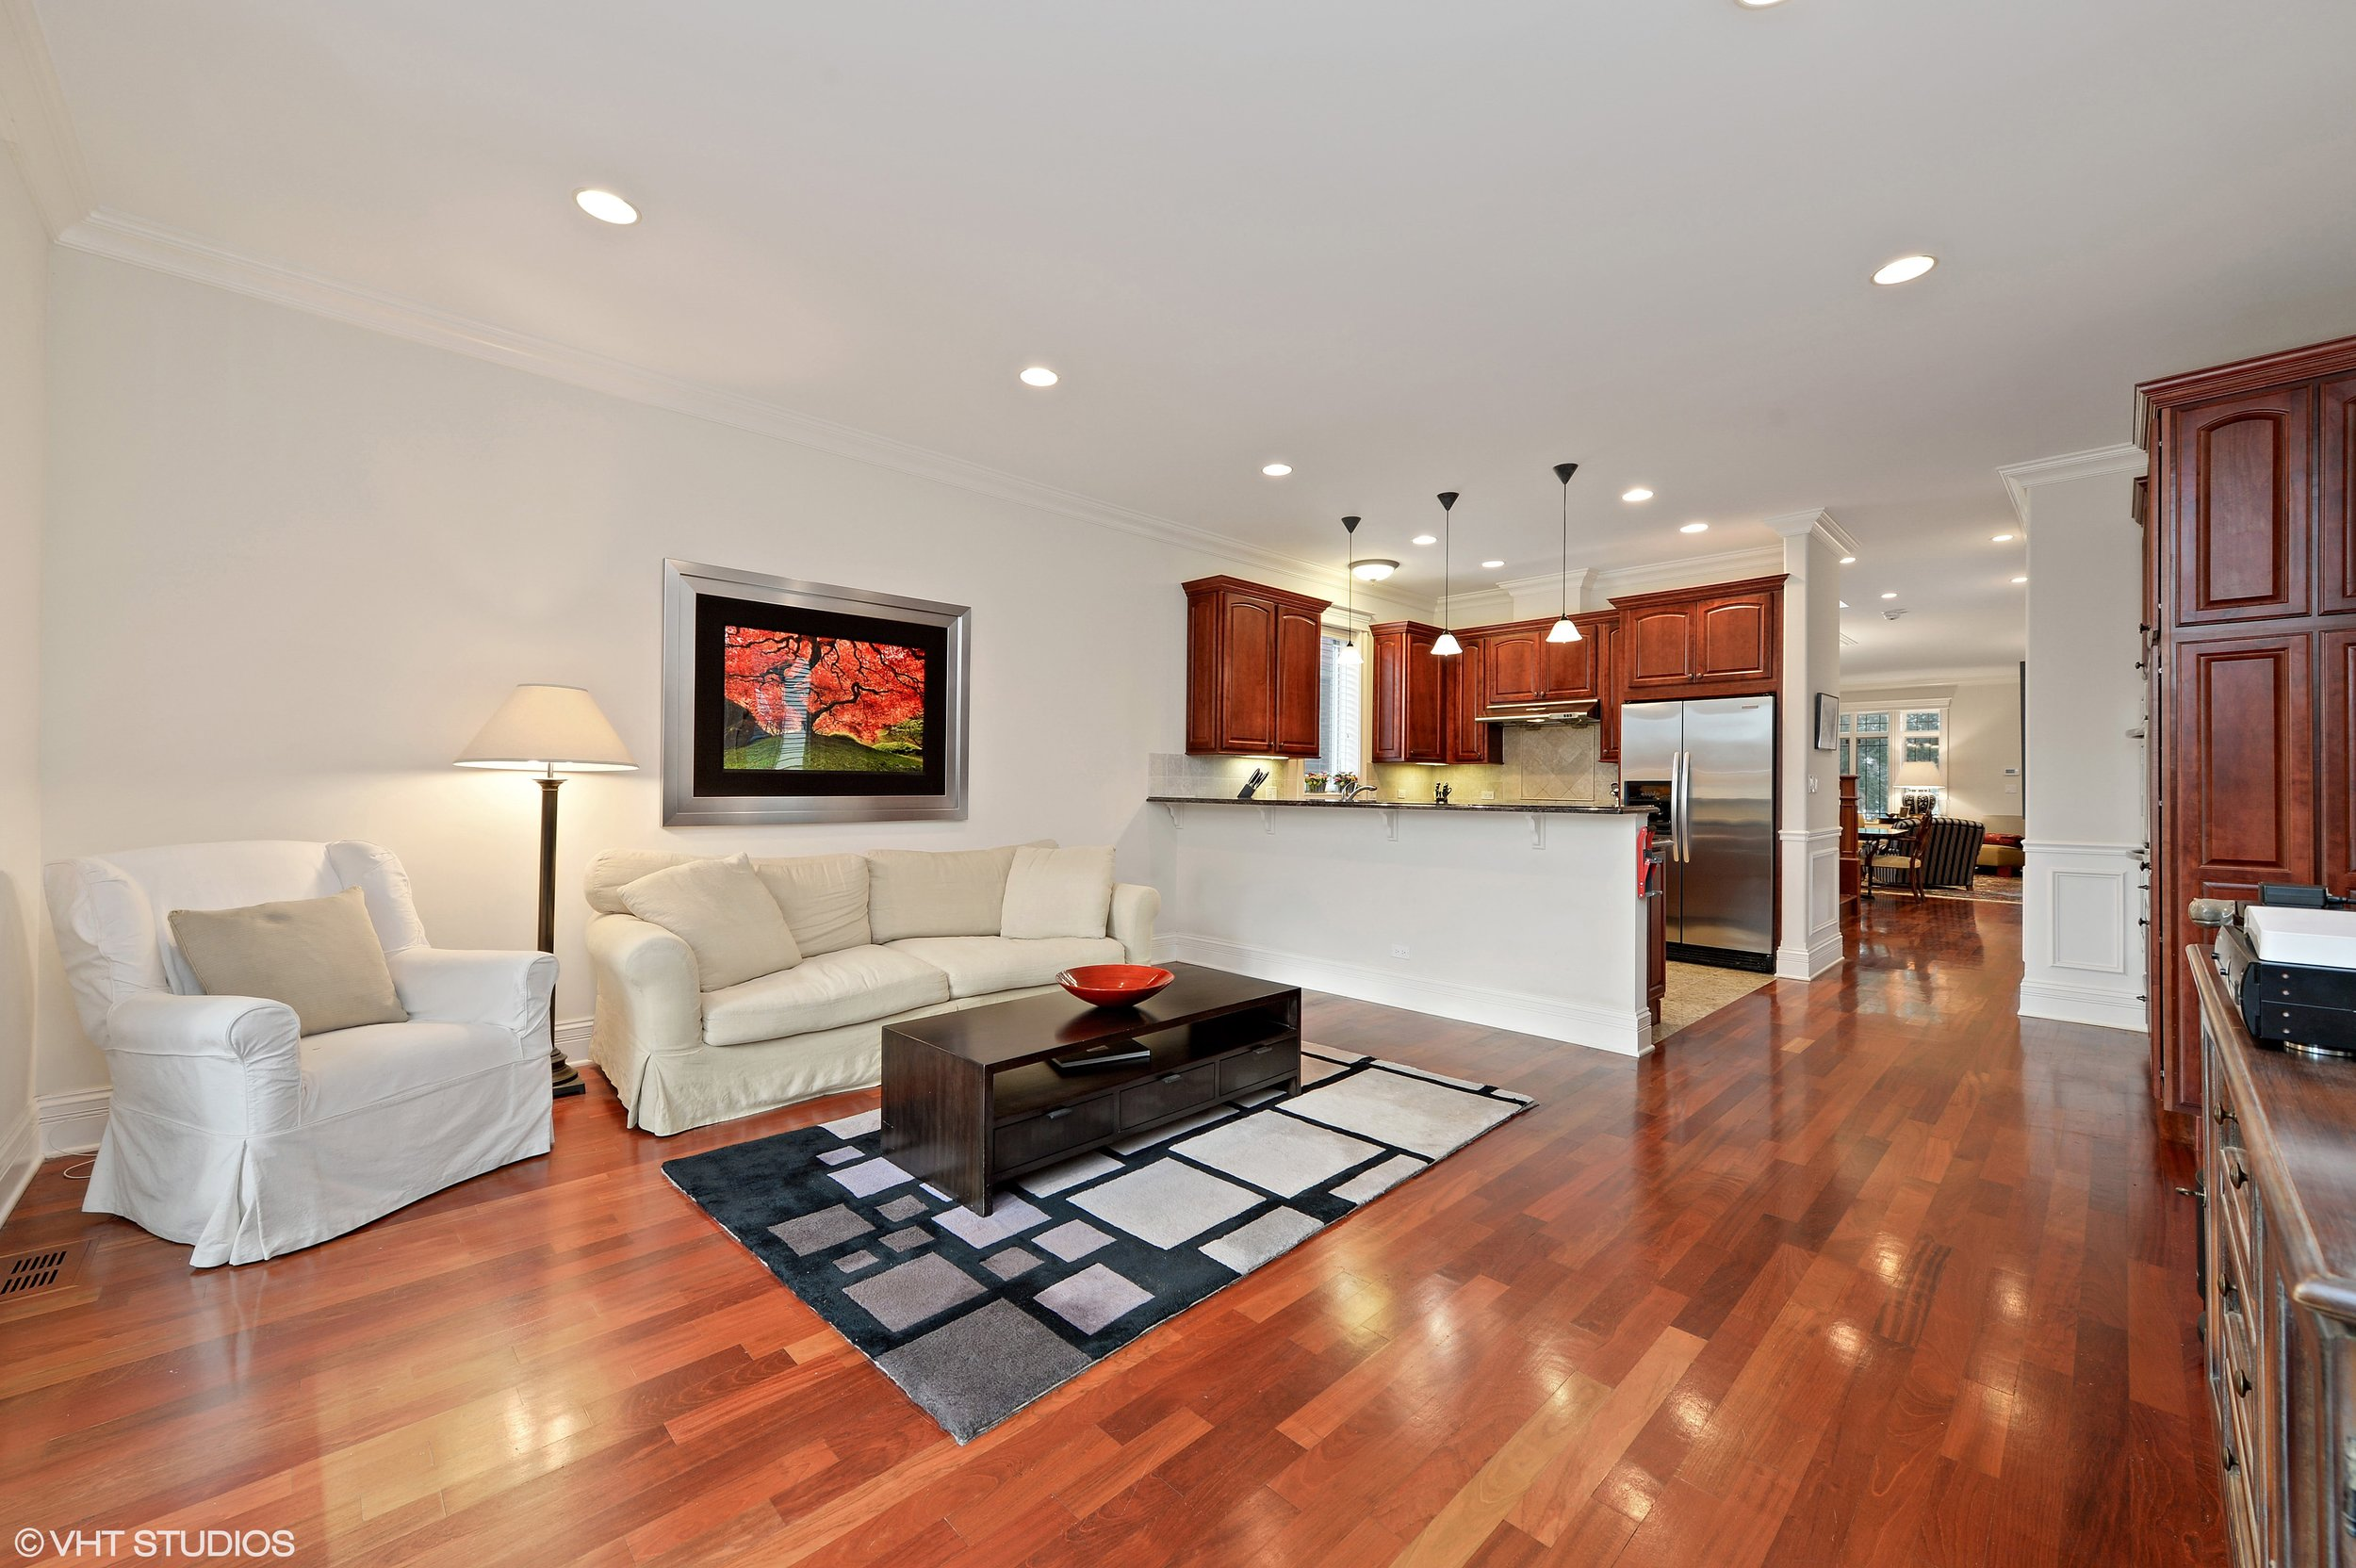 08_3212SouthThroopSt_3001_FamilyRoom_HiRes.jpg